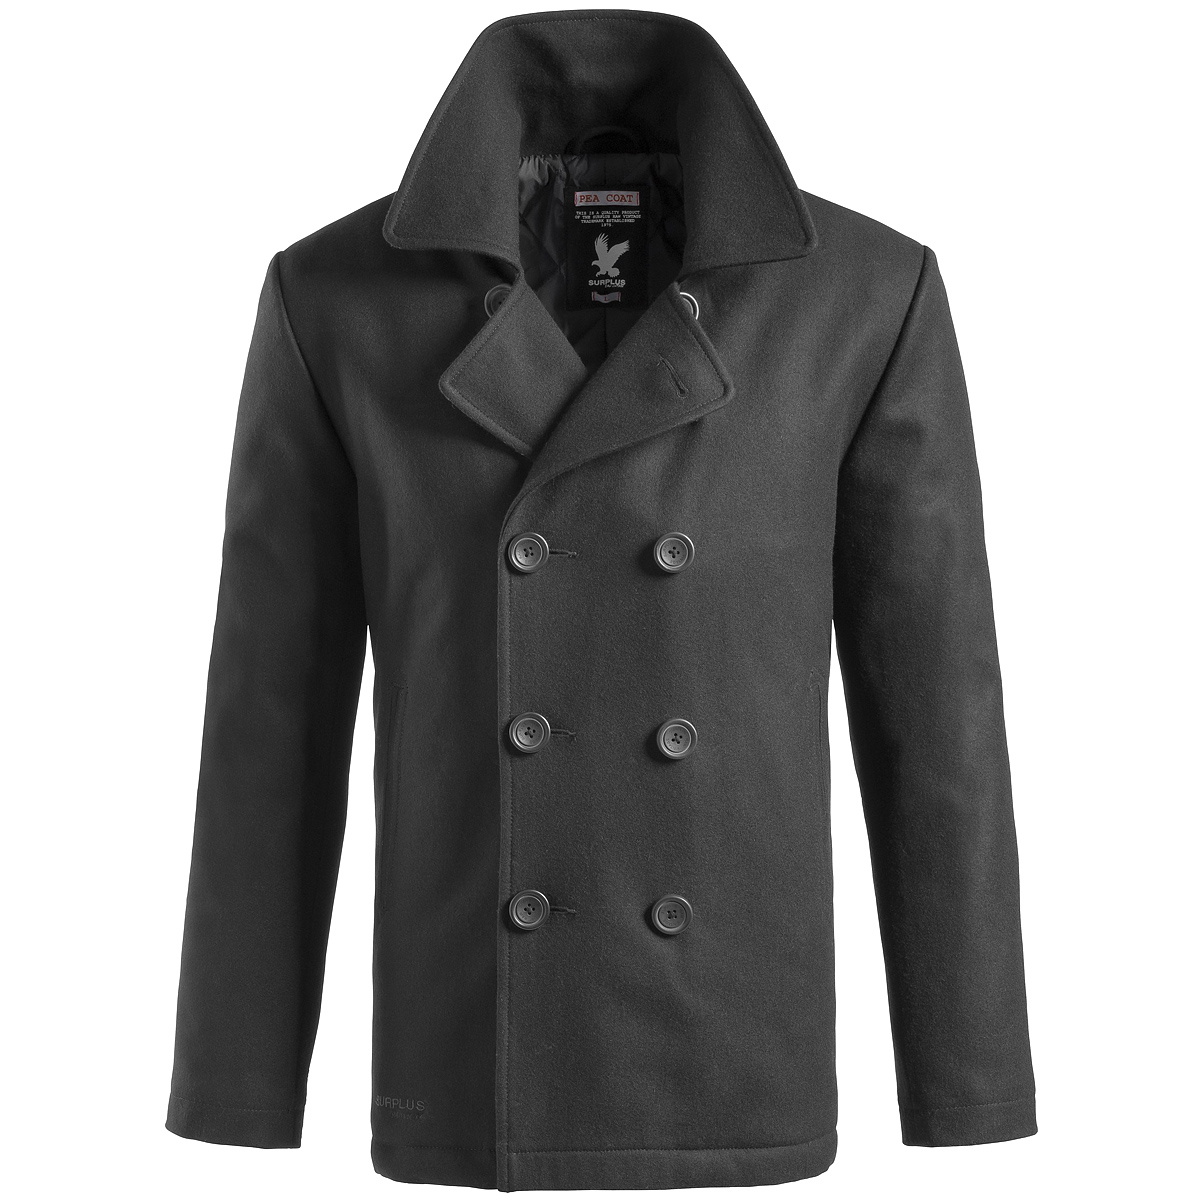 Best prices on Black wool pea coat in Men's Jackets & Coats online. Visit Bizrate to find the best deals on top brands. Read reviews on Clothing & Accessories merchants and buy with confidence.